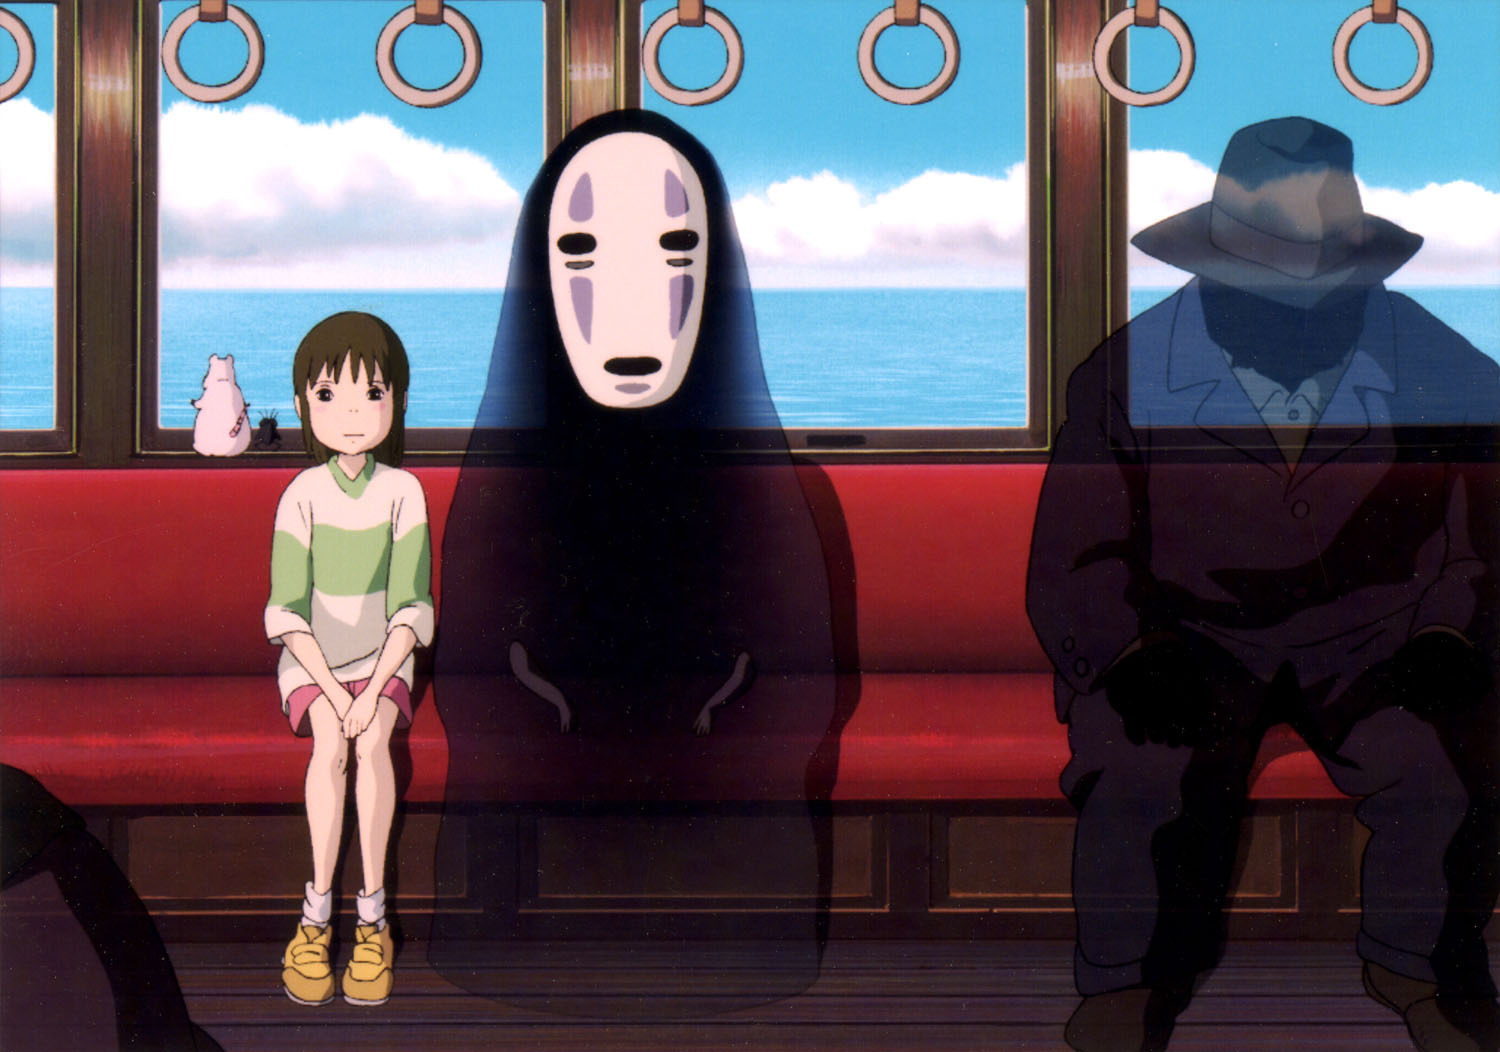 4f6deb8a5c74f69eb51c_Spirited_Away.jpg